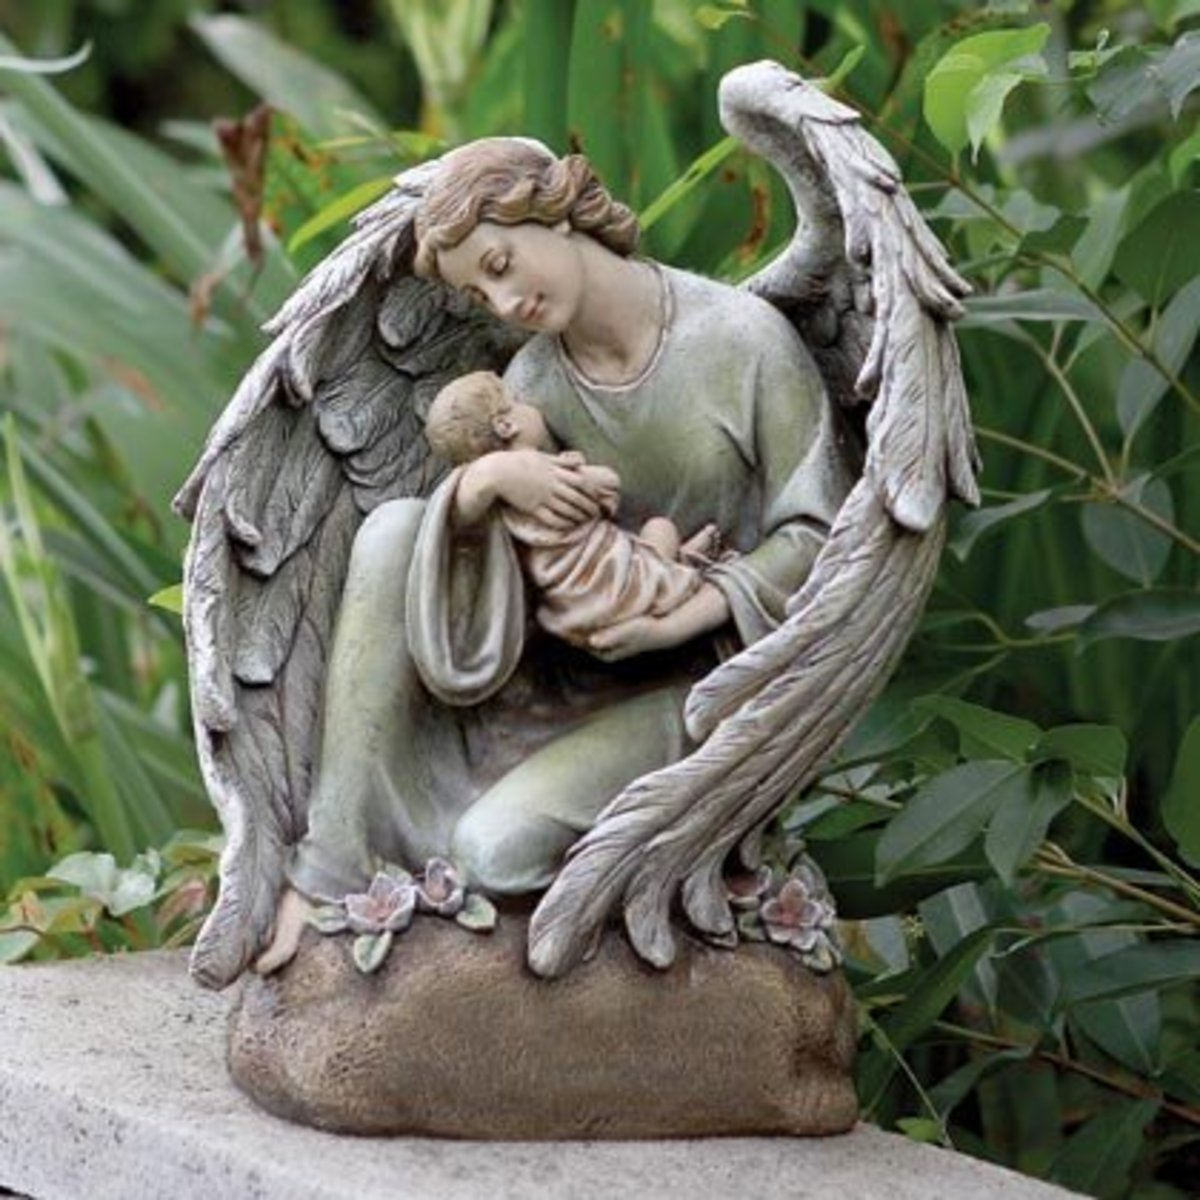 A Peacefull Angel Having A Baby in Her Arms is Your Perfect Statue To Have This Christmas